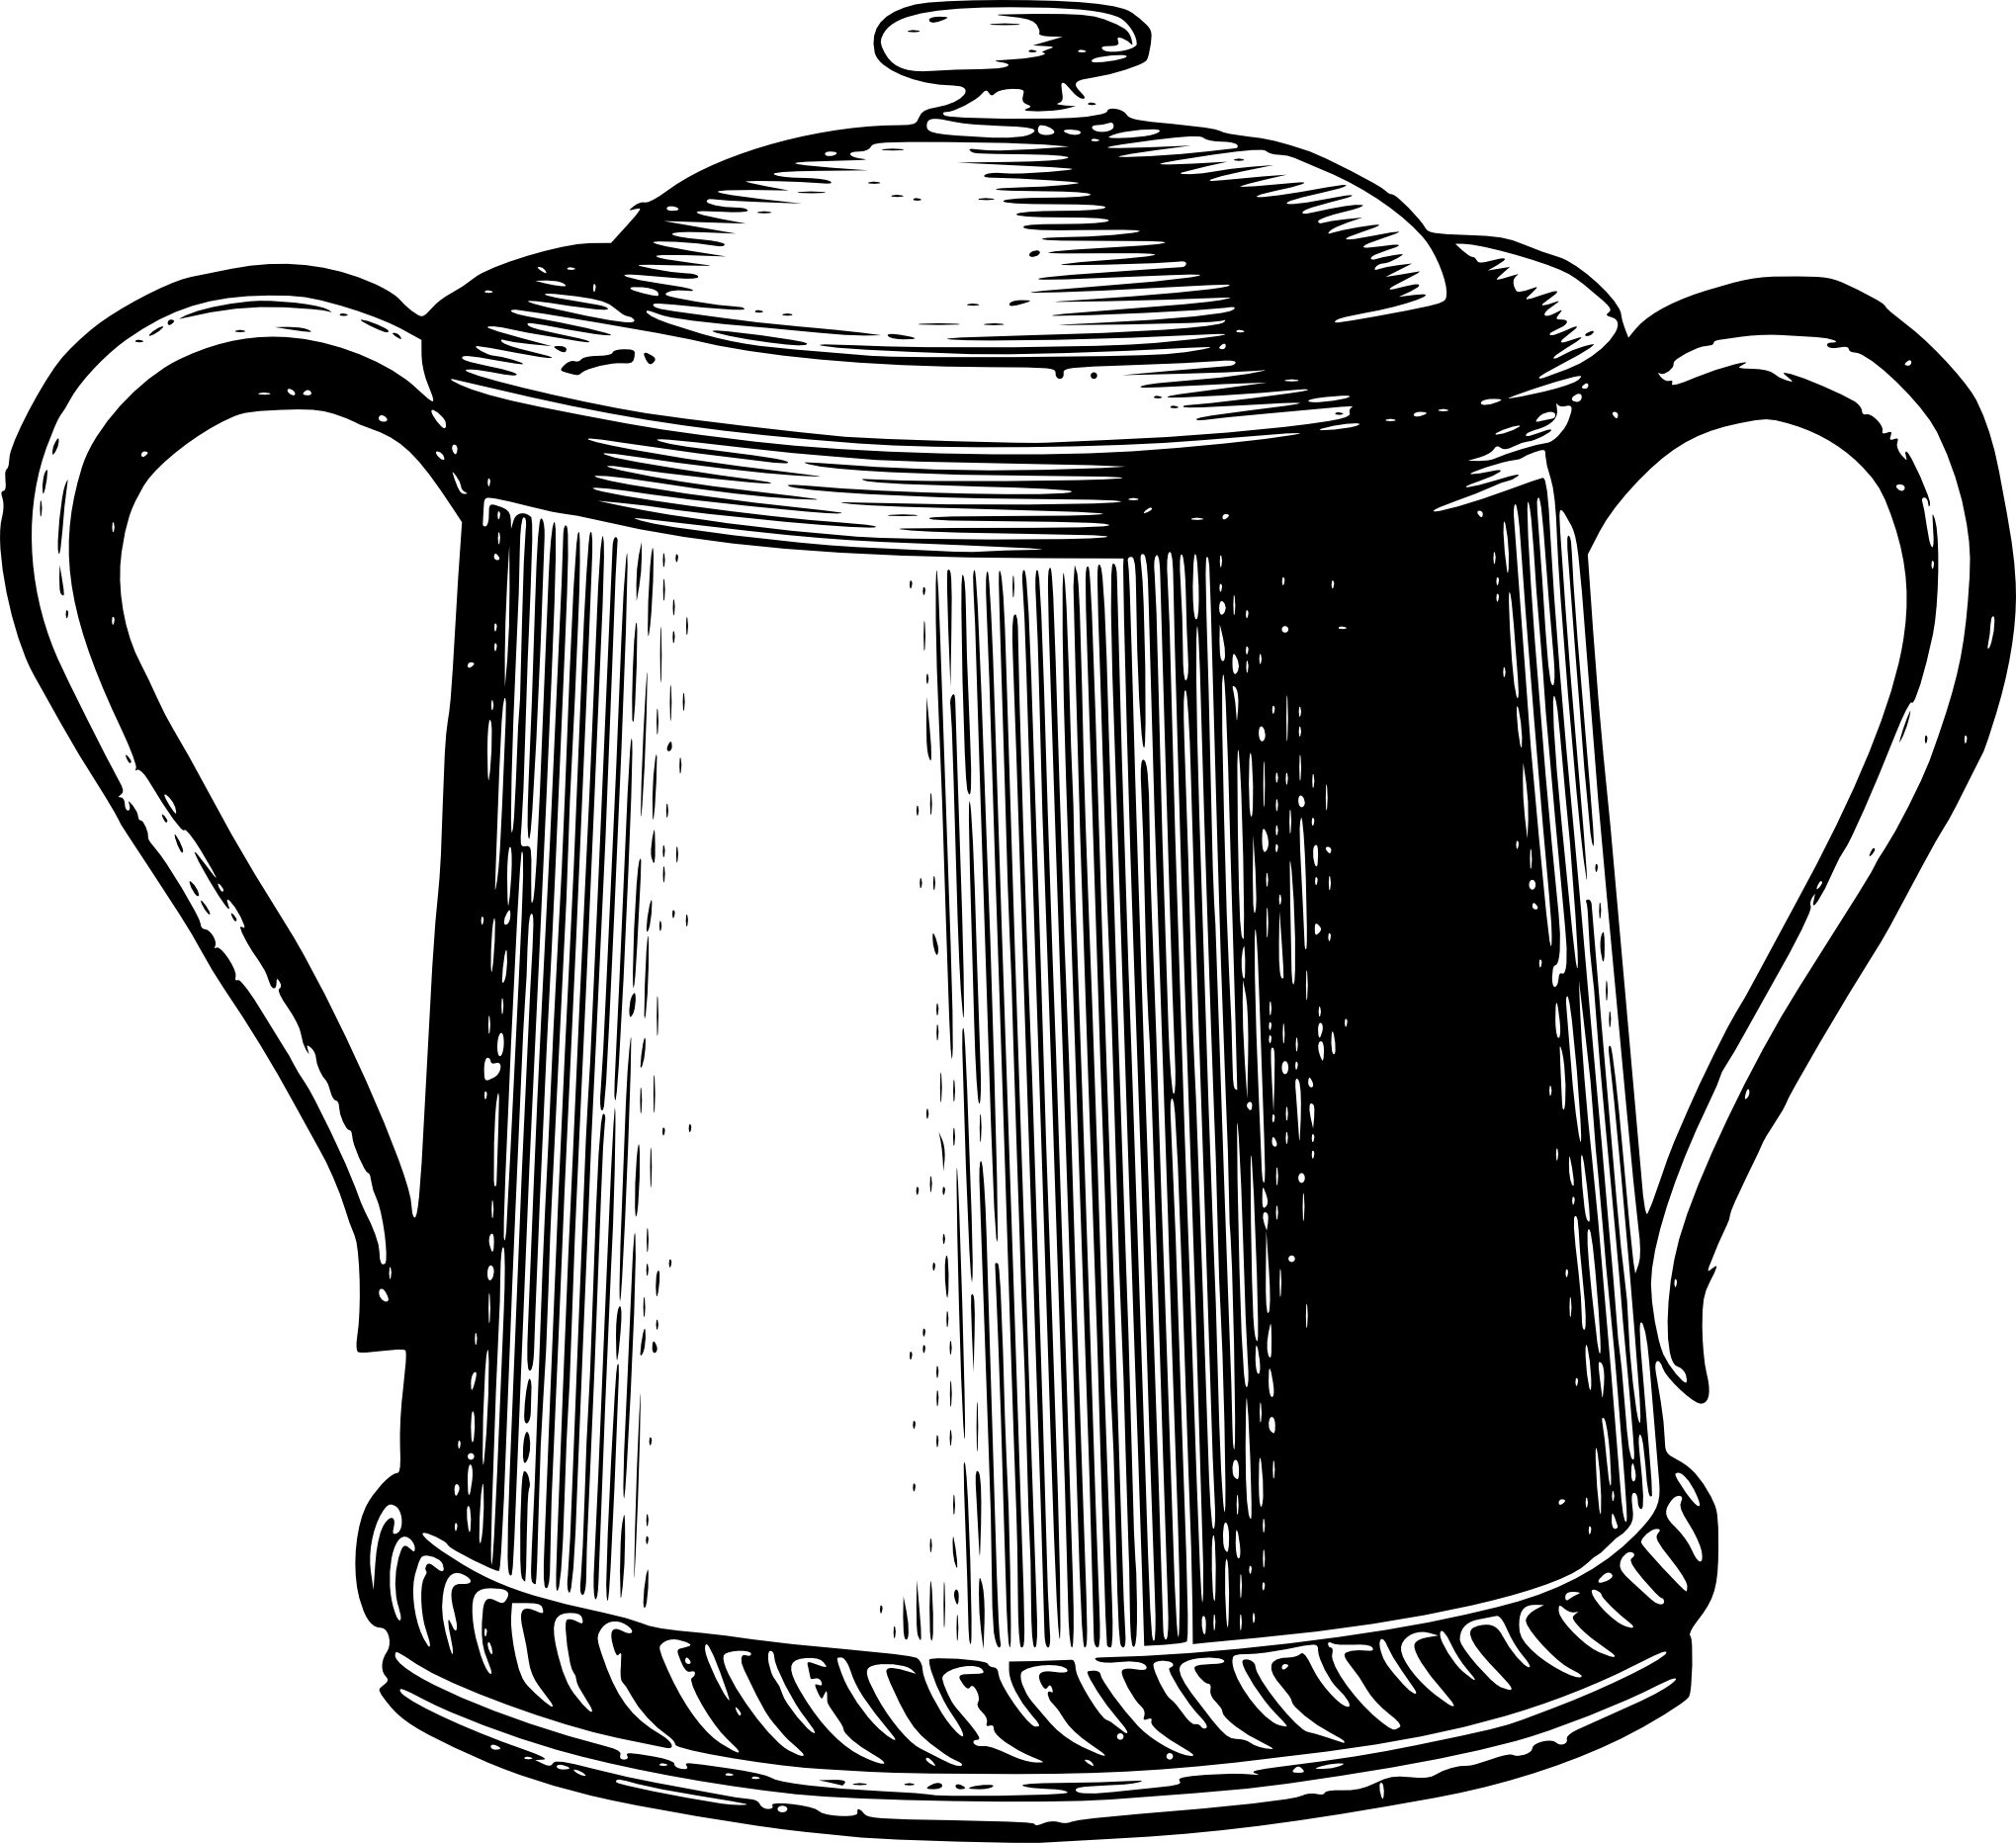 2039x1864 Free Clip Art Tea Service Set Oh So Nifty Vintage Graphics